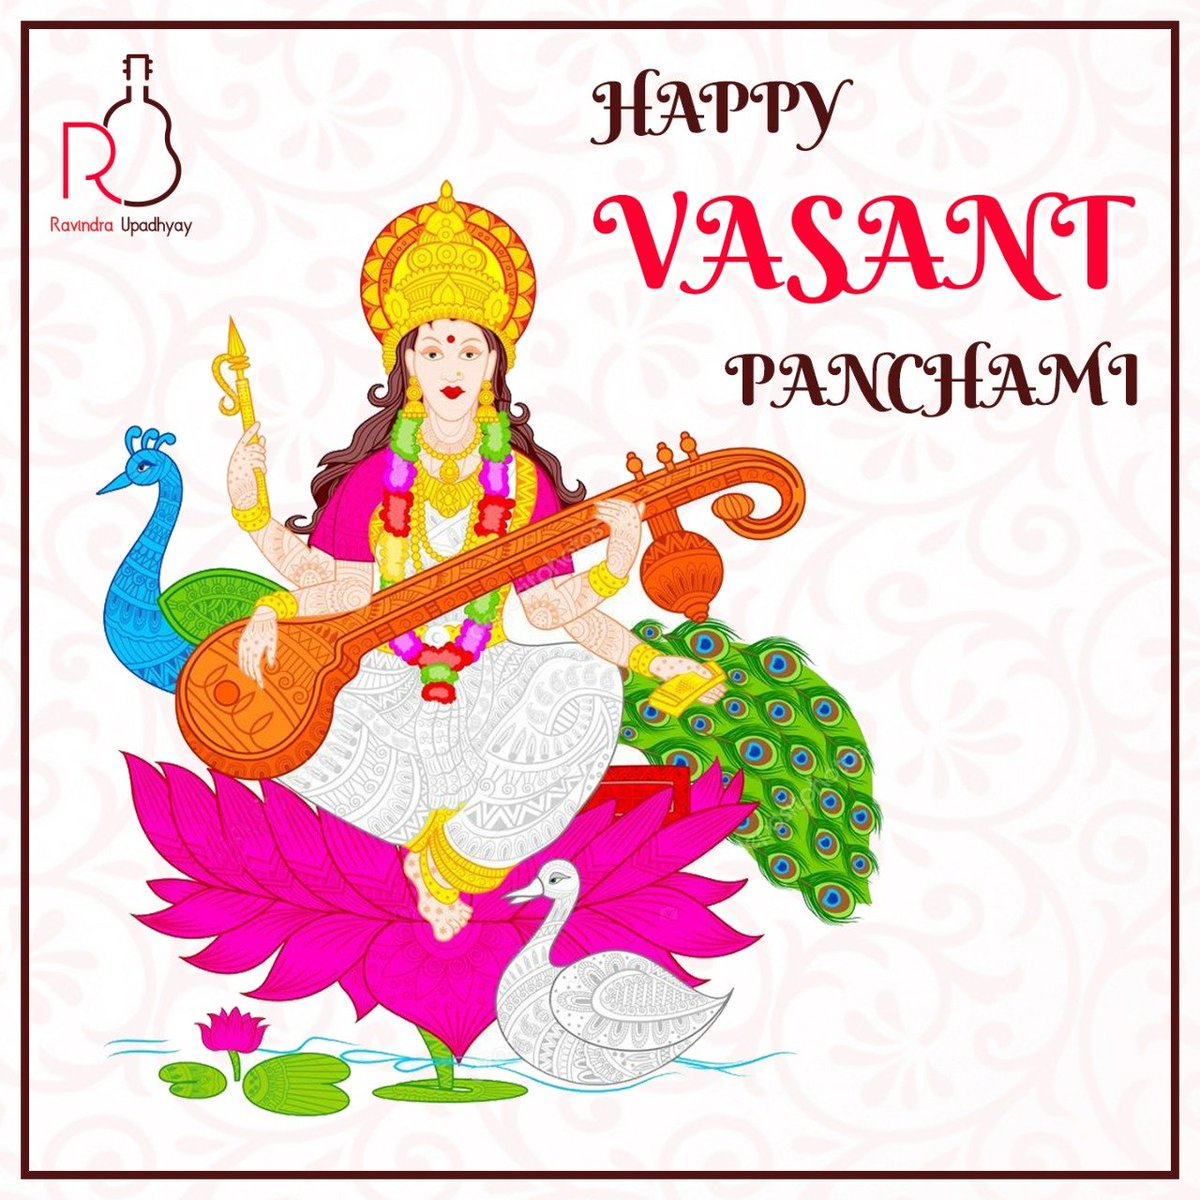 Wish you all a very Happy Vasant Panchami. #VasantPanchami #HappyVasantPanchami #VasantPanchami2019 #BasantPanchami #Devi #Saraswati #MaaSaraswati #SaraswatiMaa #SaraswatiPuja #SaraswatiPooja #Puja  #Knowledge #Music #Art